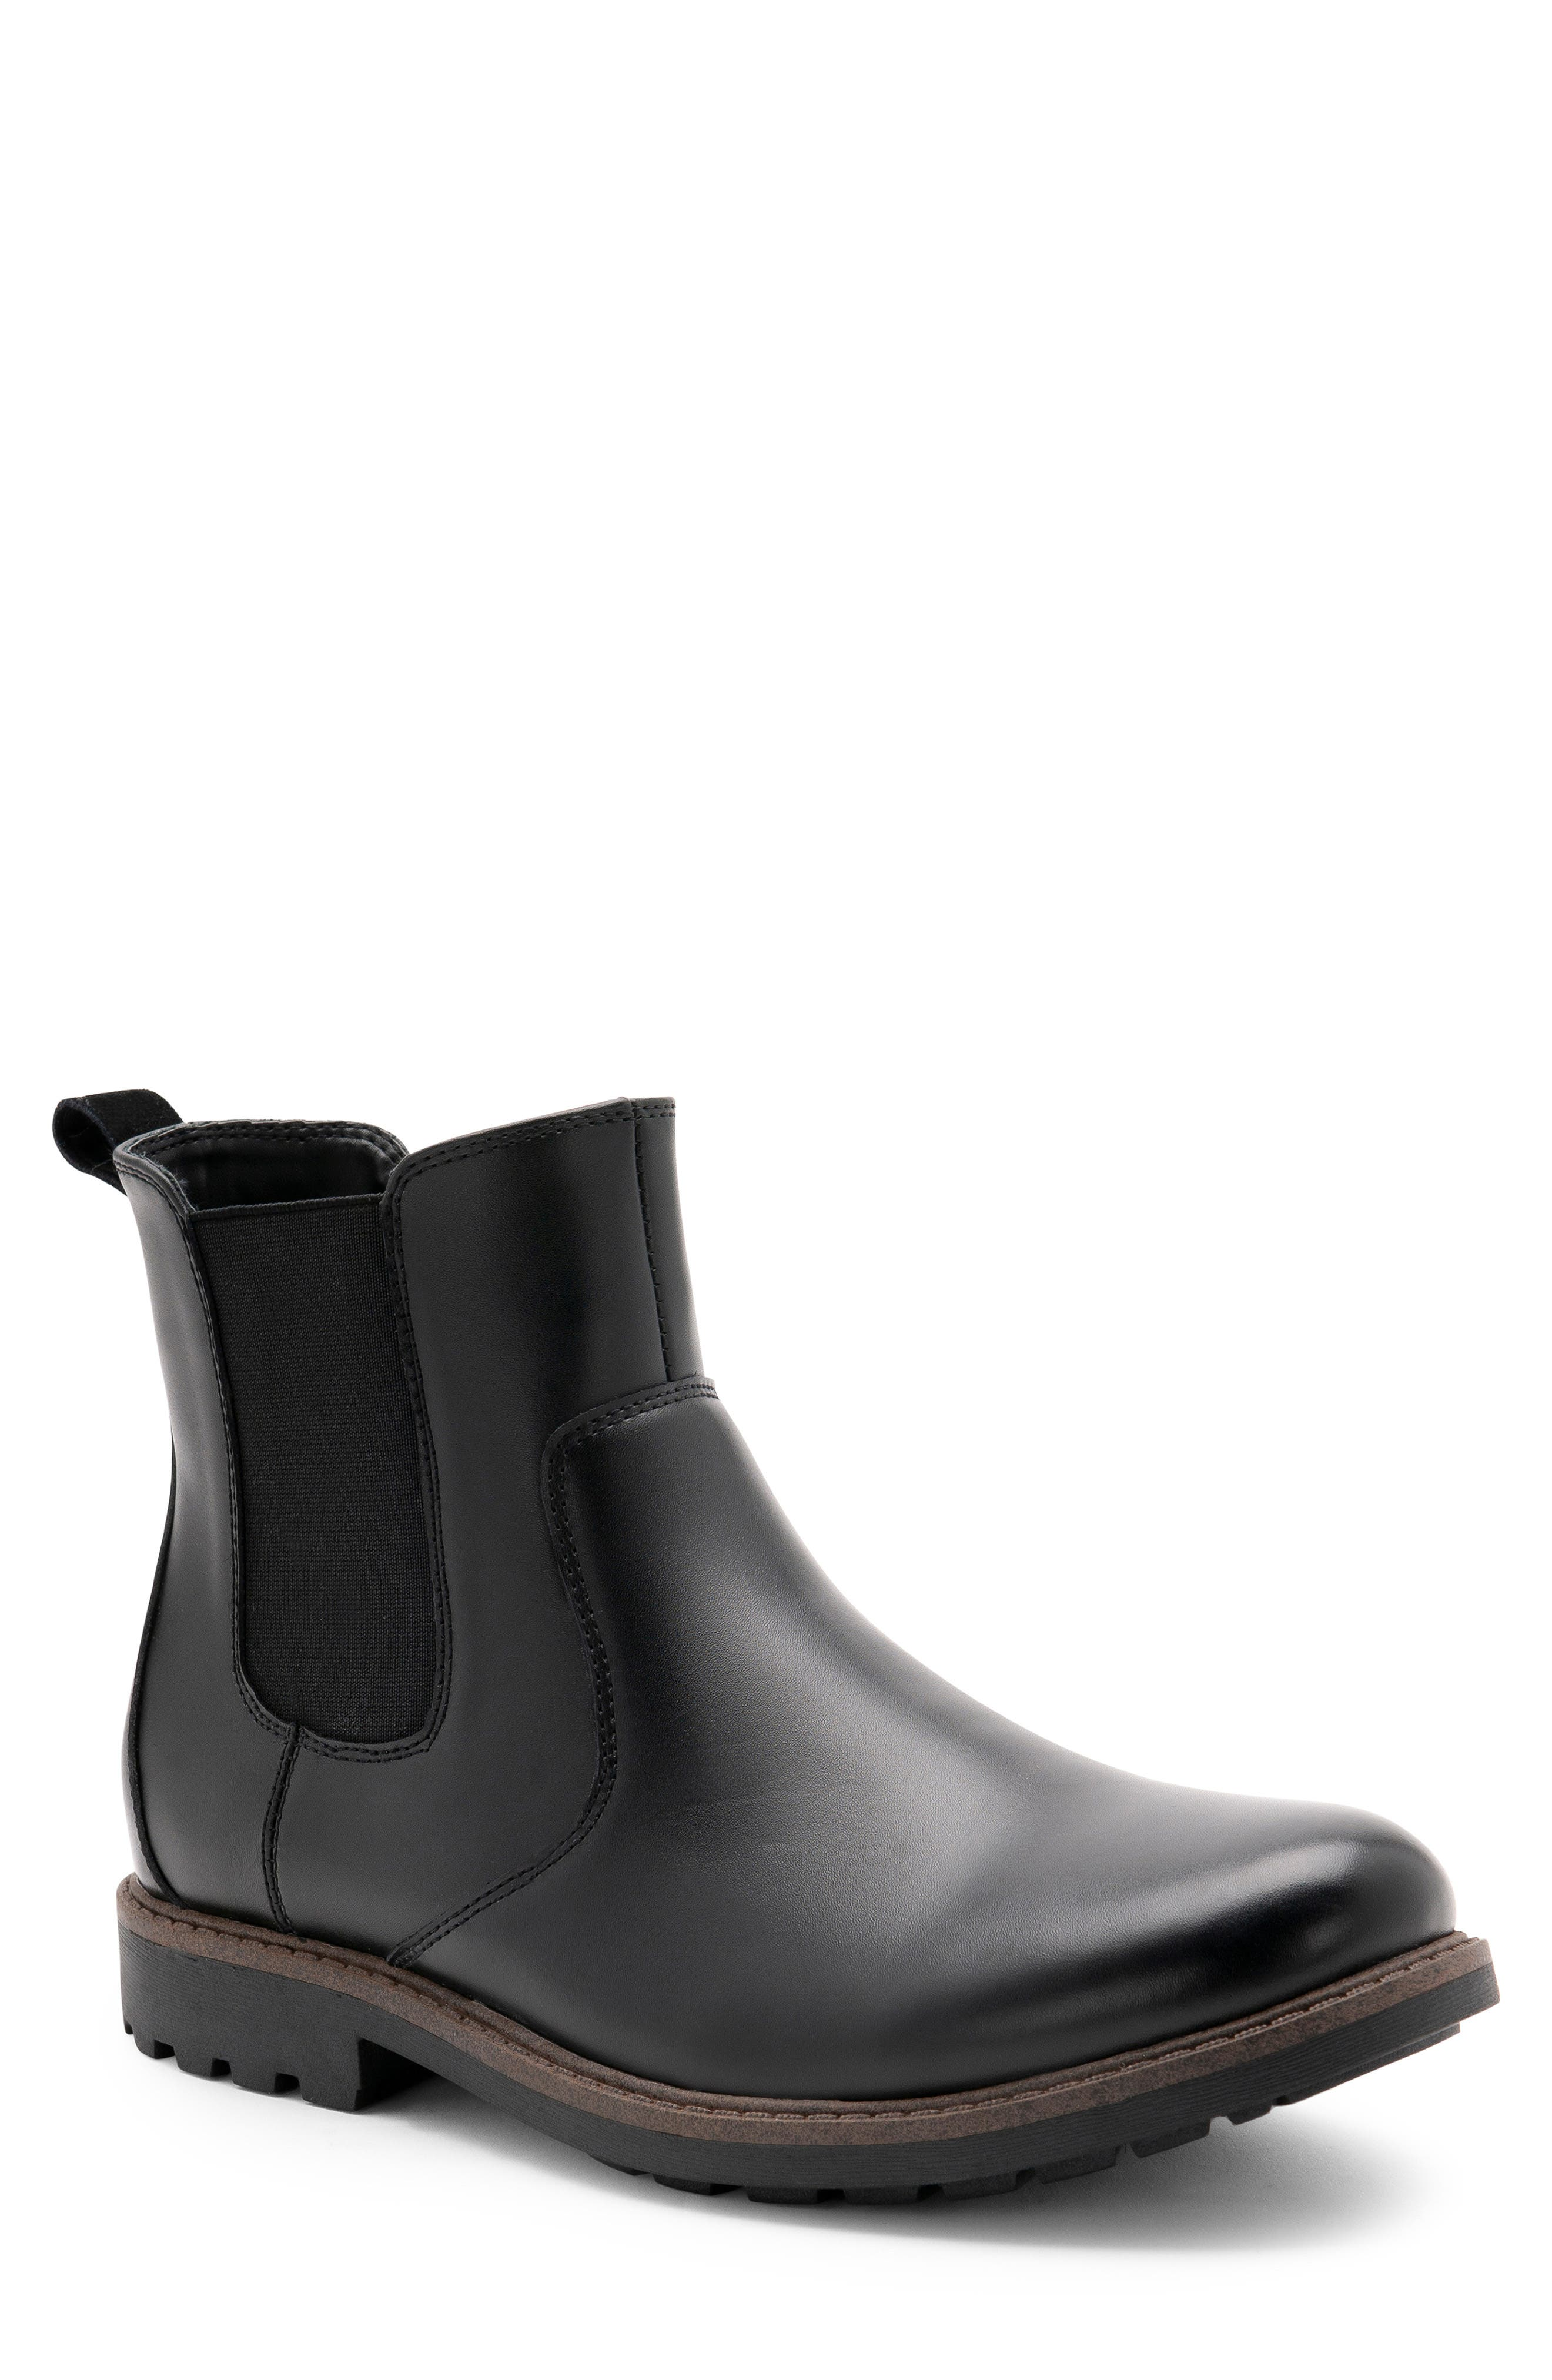 BLONDO Shadow Waterproof Chelsea Boot, Main, color, BLACK LEATHER